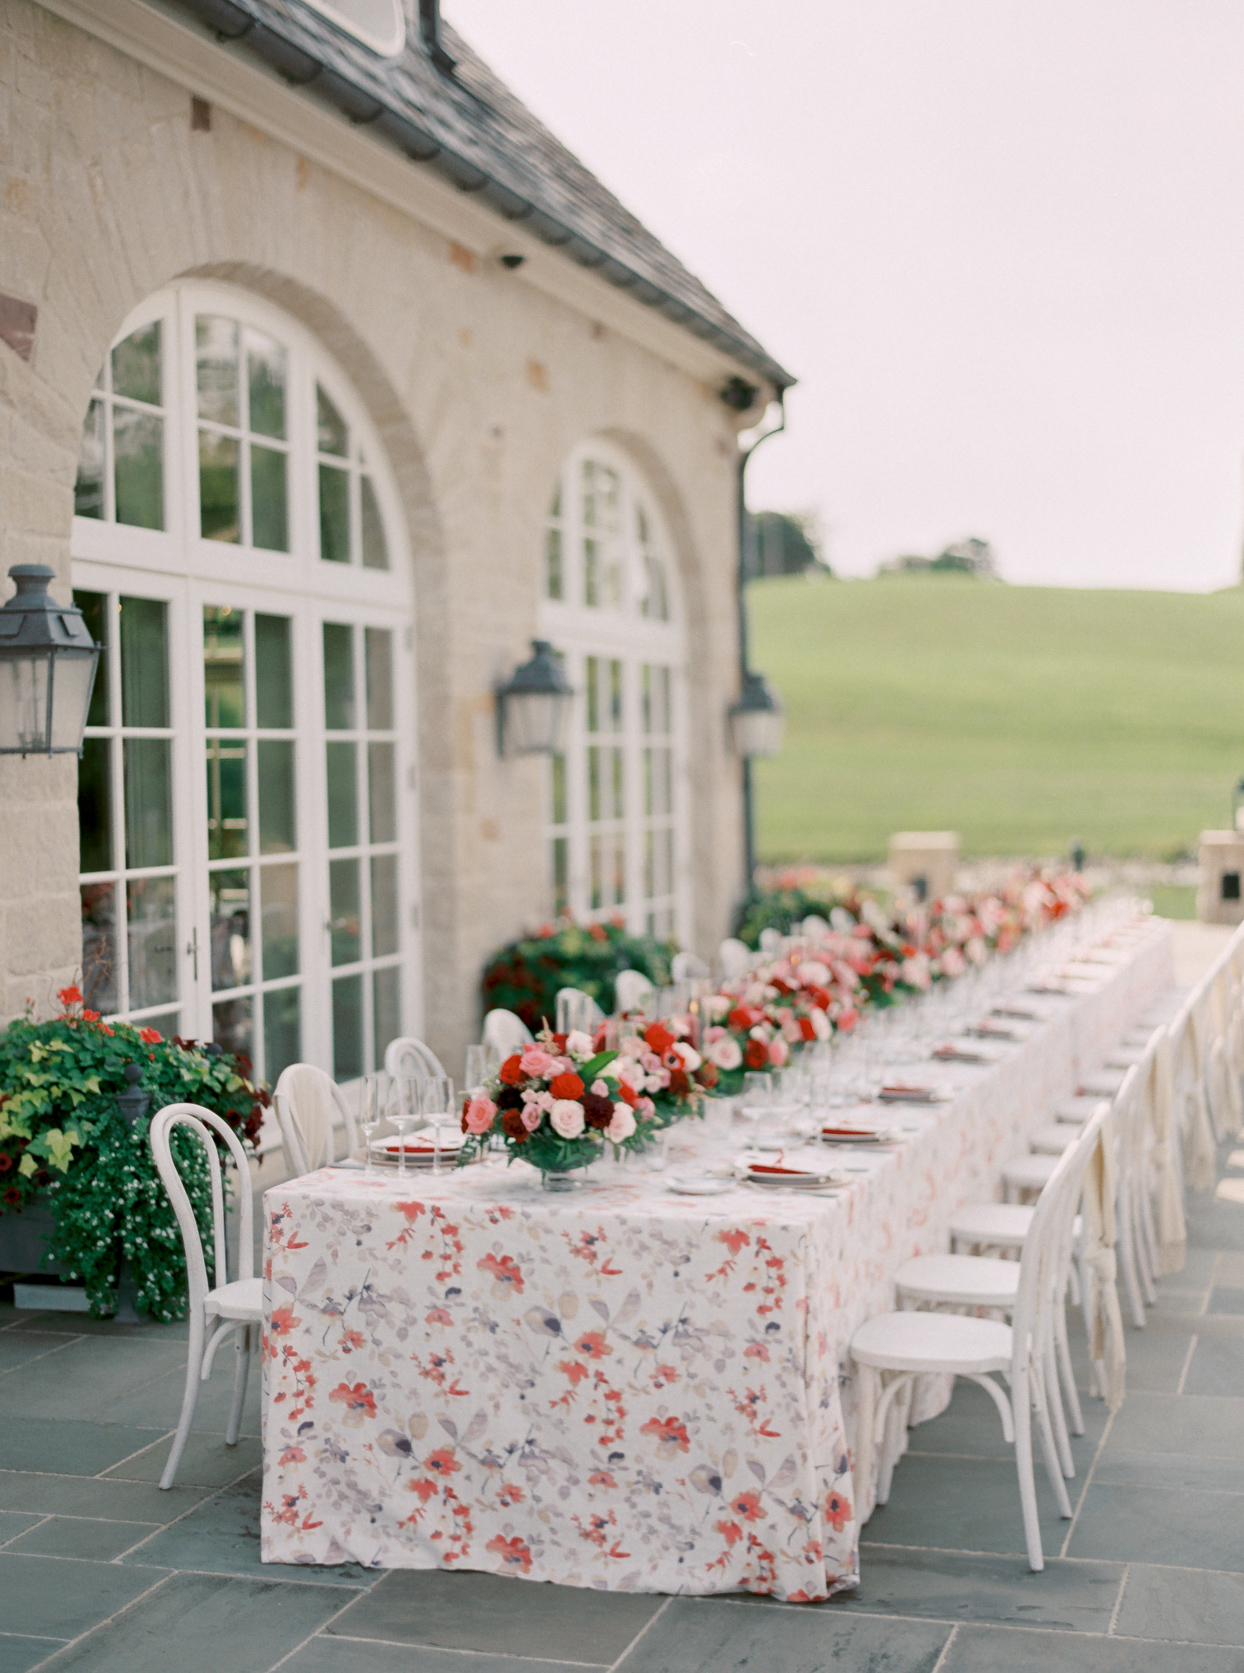 outdoor wedding reception table with floral tablecloth